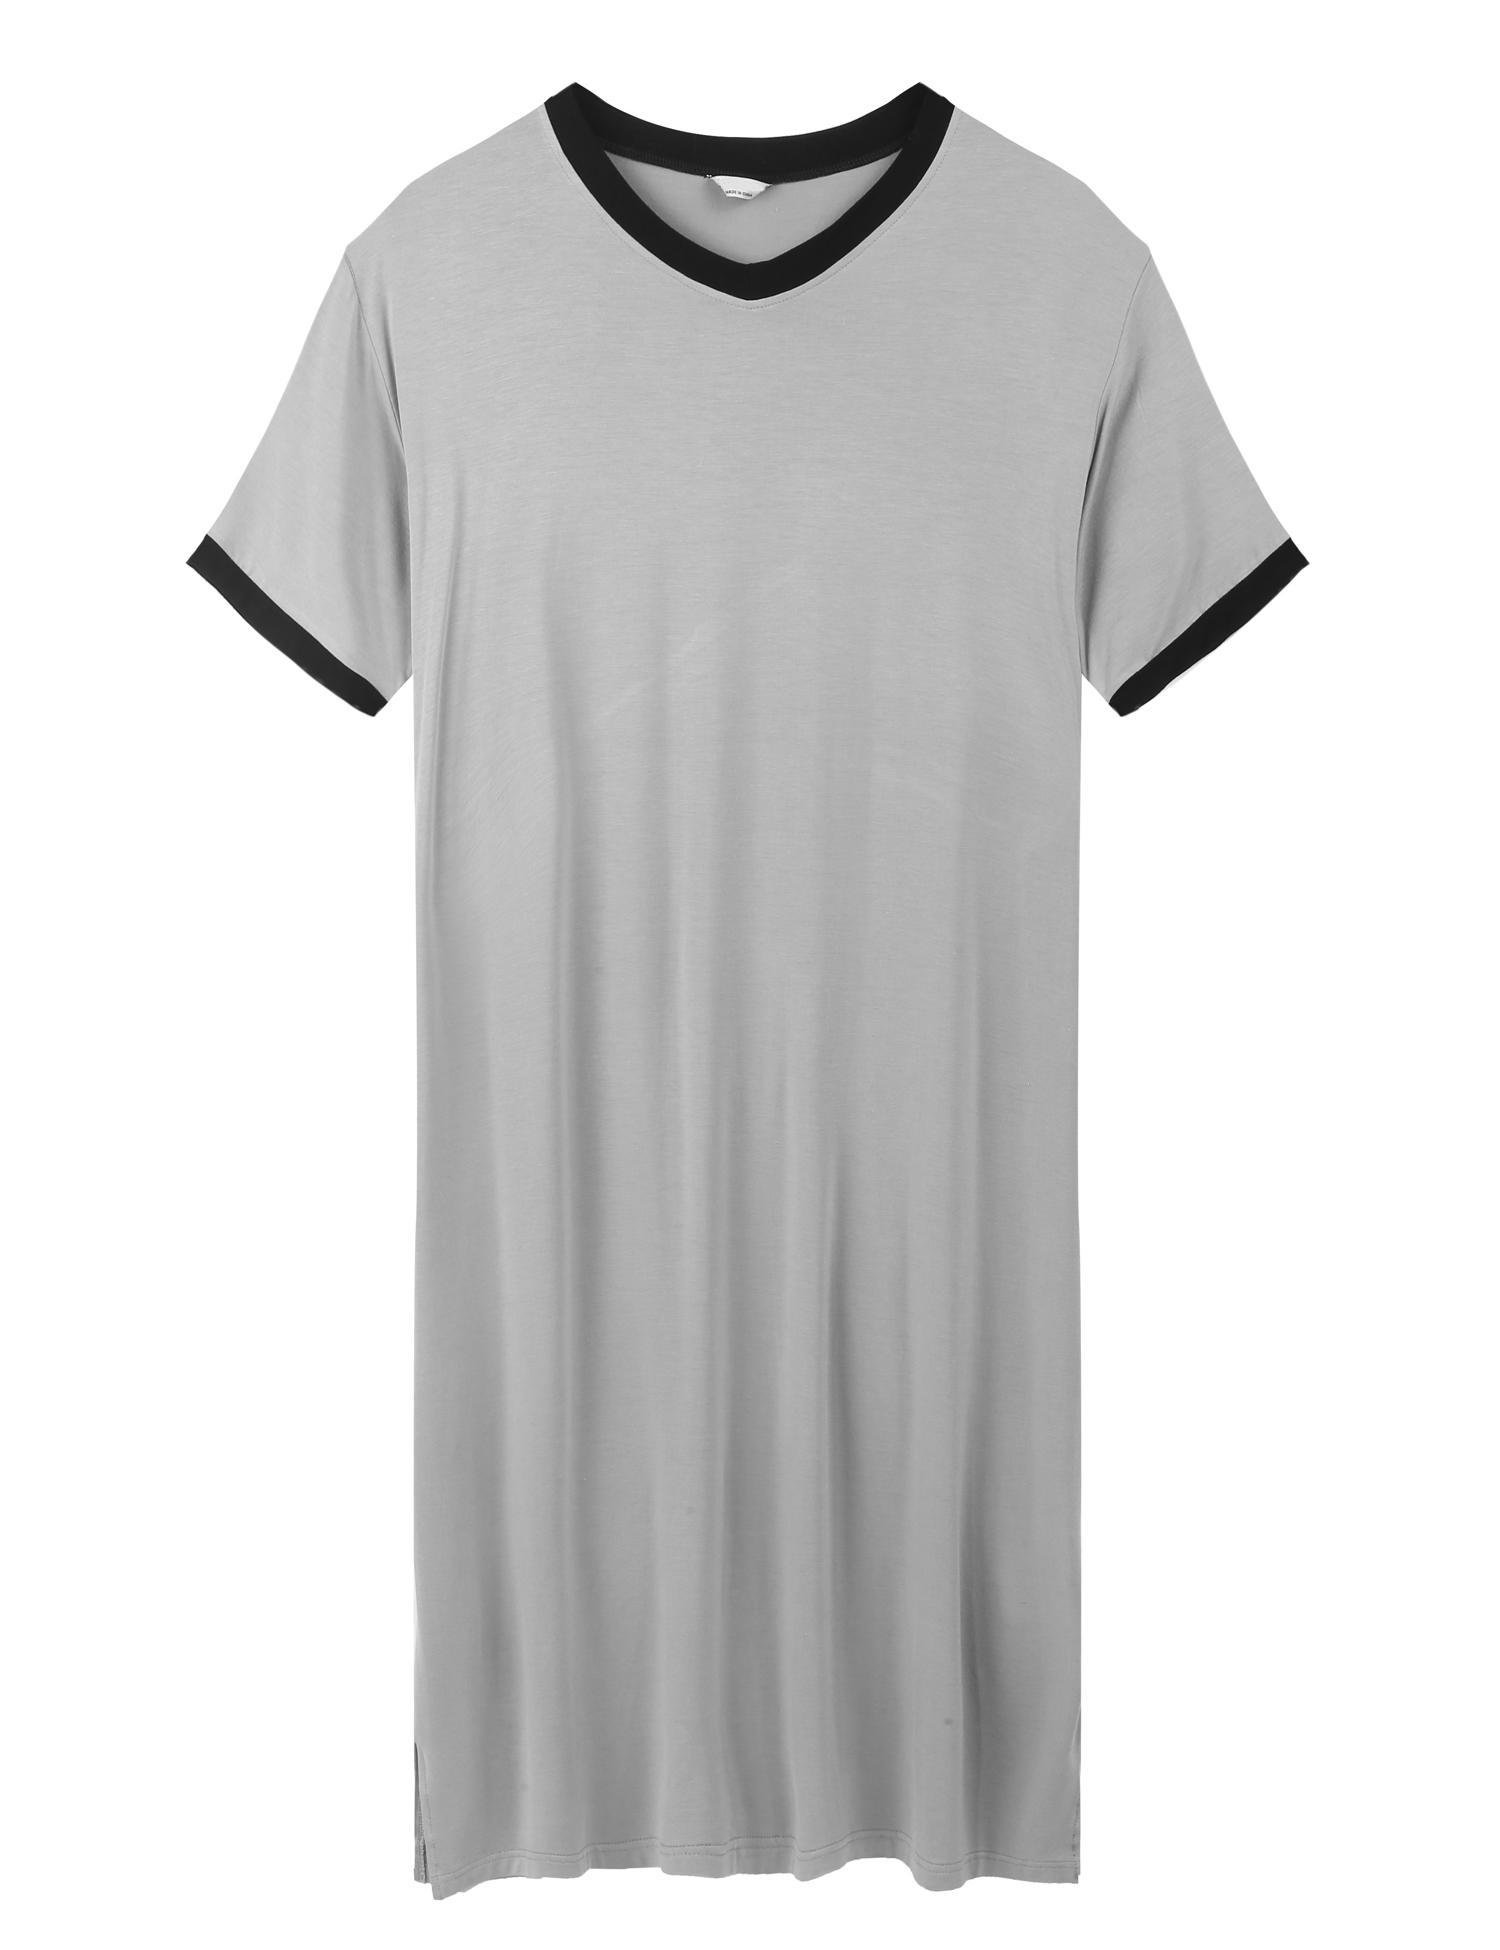 Skylin Men's Nightshirt Cotton Nightwear Comfy Big&Tall Short Sleeve Henley Sleep Shirt (Grey, Large)